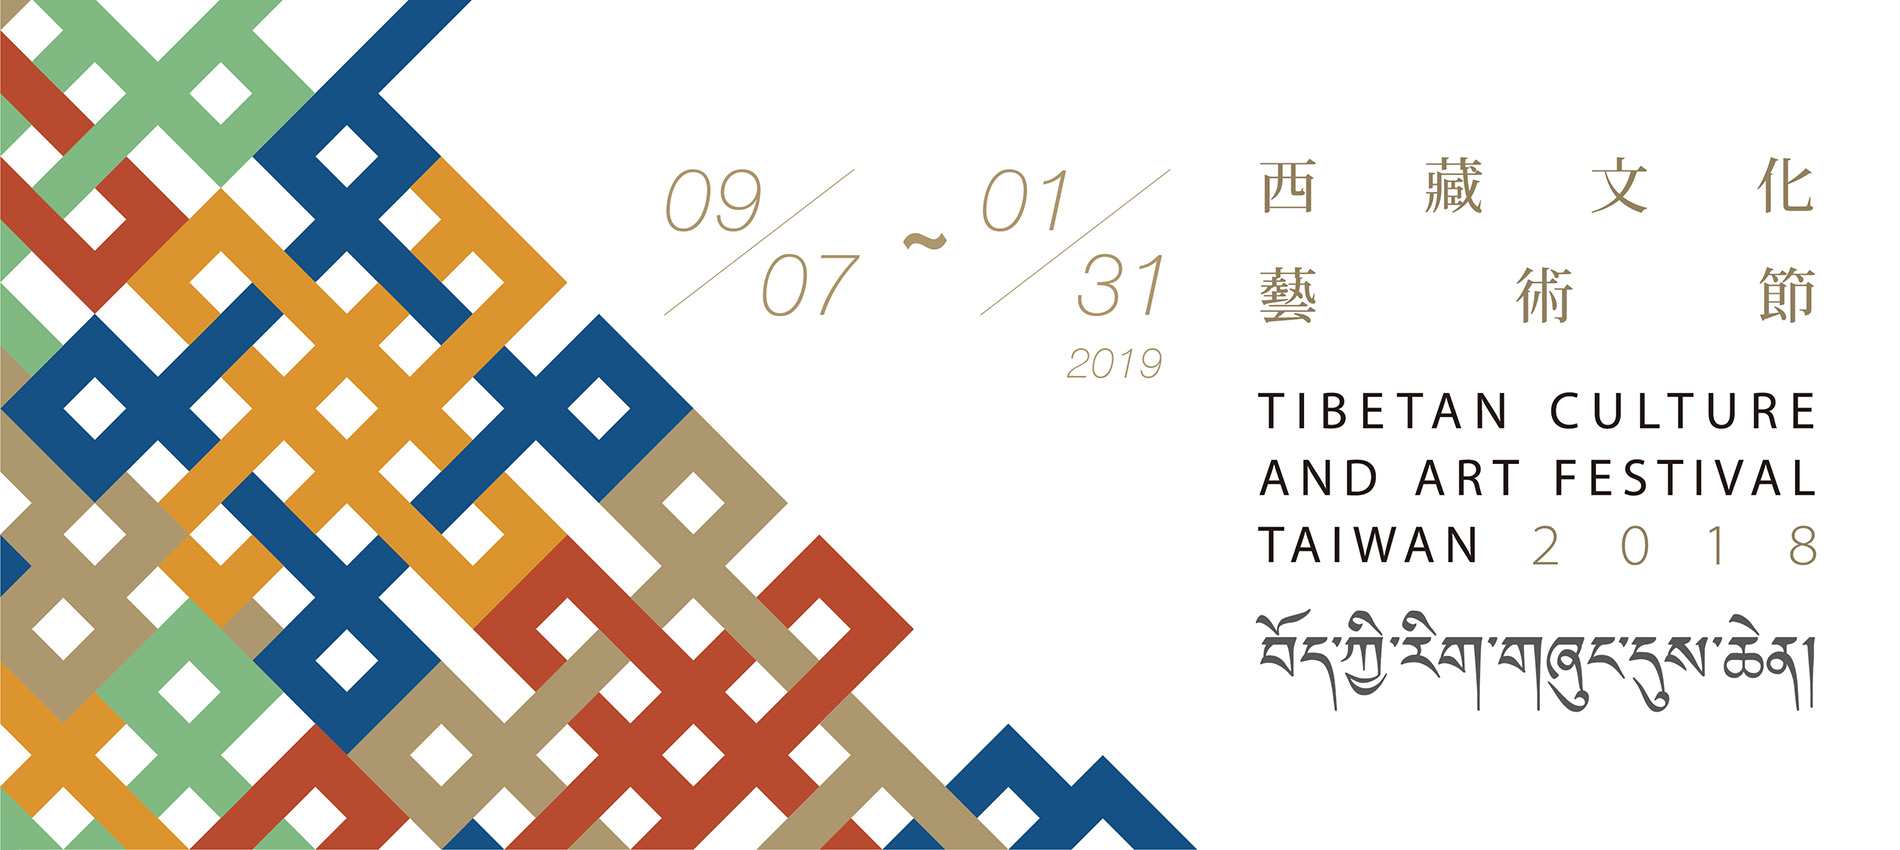 Cultural festival in Taiwan to showcase the many charms of Tibet